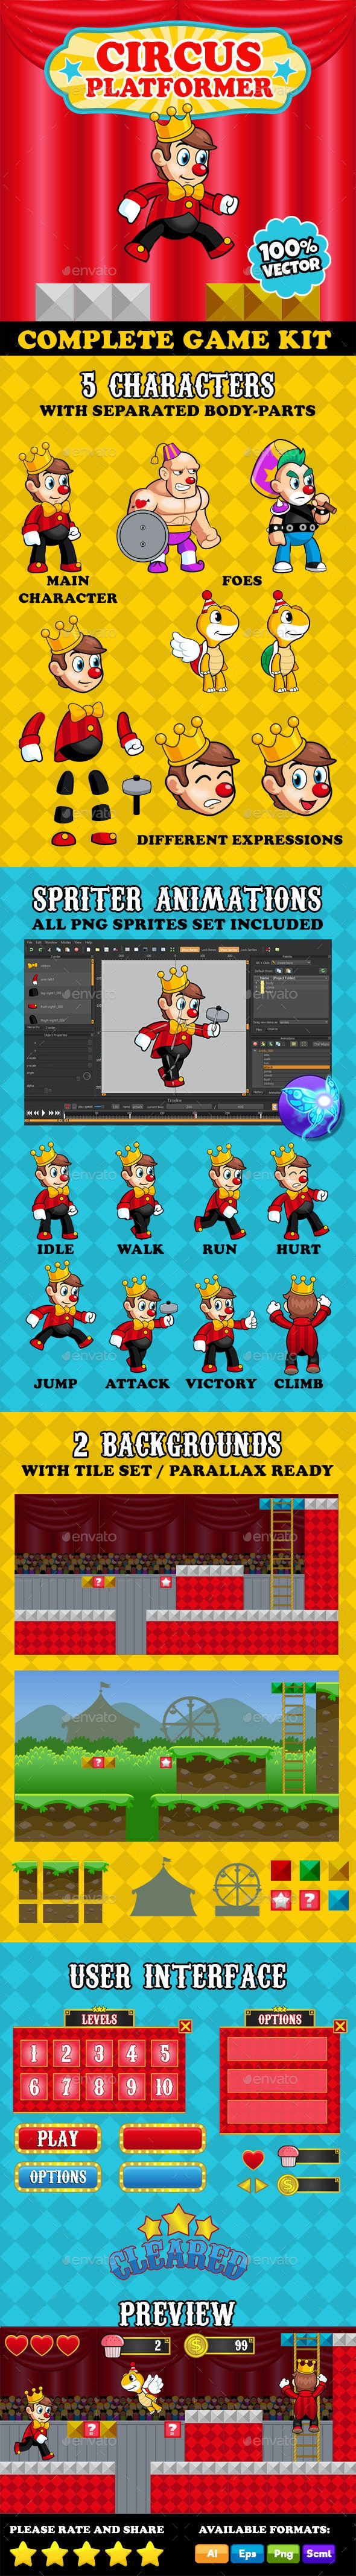 Circus Platformer - Complete Game Kit - Game Kits Game Assets